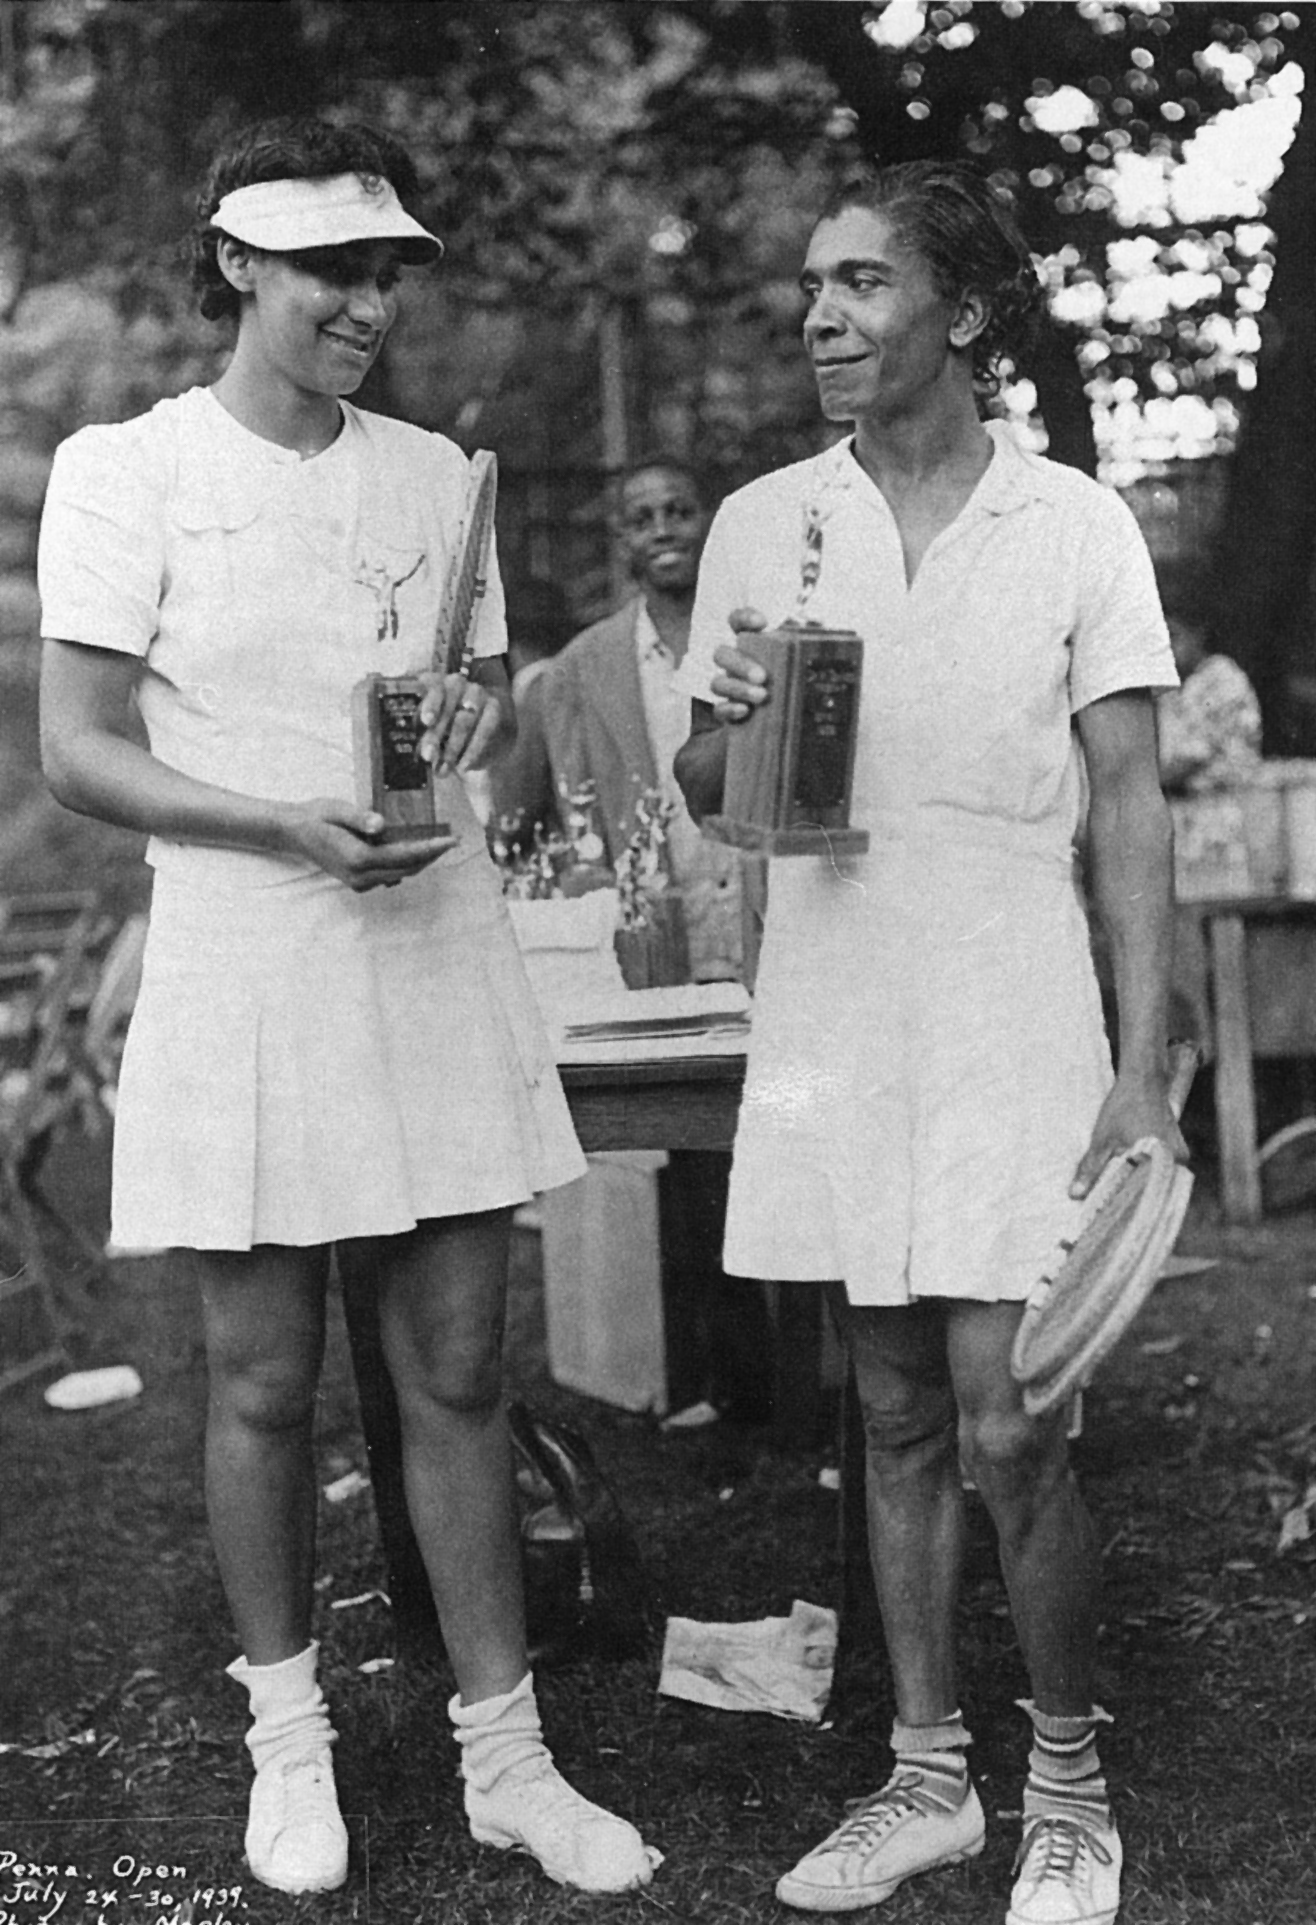 "Ora Wachington (right) was an American athlete from Philadelphia known as the ""Queen of Tennis."" In professional tennis she won American tennis Association's national singles title eight times in nine years between 1929 and 1937. Unable to compete against the top white tennis player of the time, Helen Moody, because Moody refused to play her she retired from sports in 1940. For the remainder of her life she supported herself as a housekeeper.  A state historical marker stands at the location of the YWCA that  she taught and played at in Philadelphia."